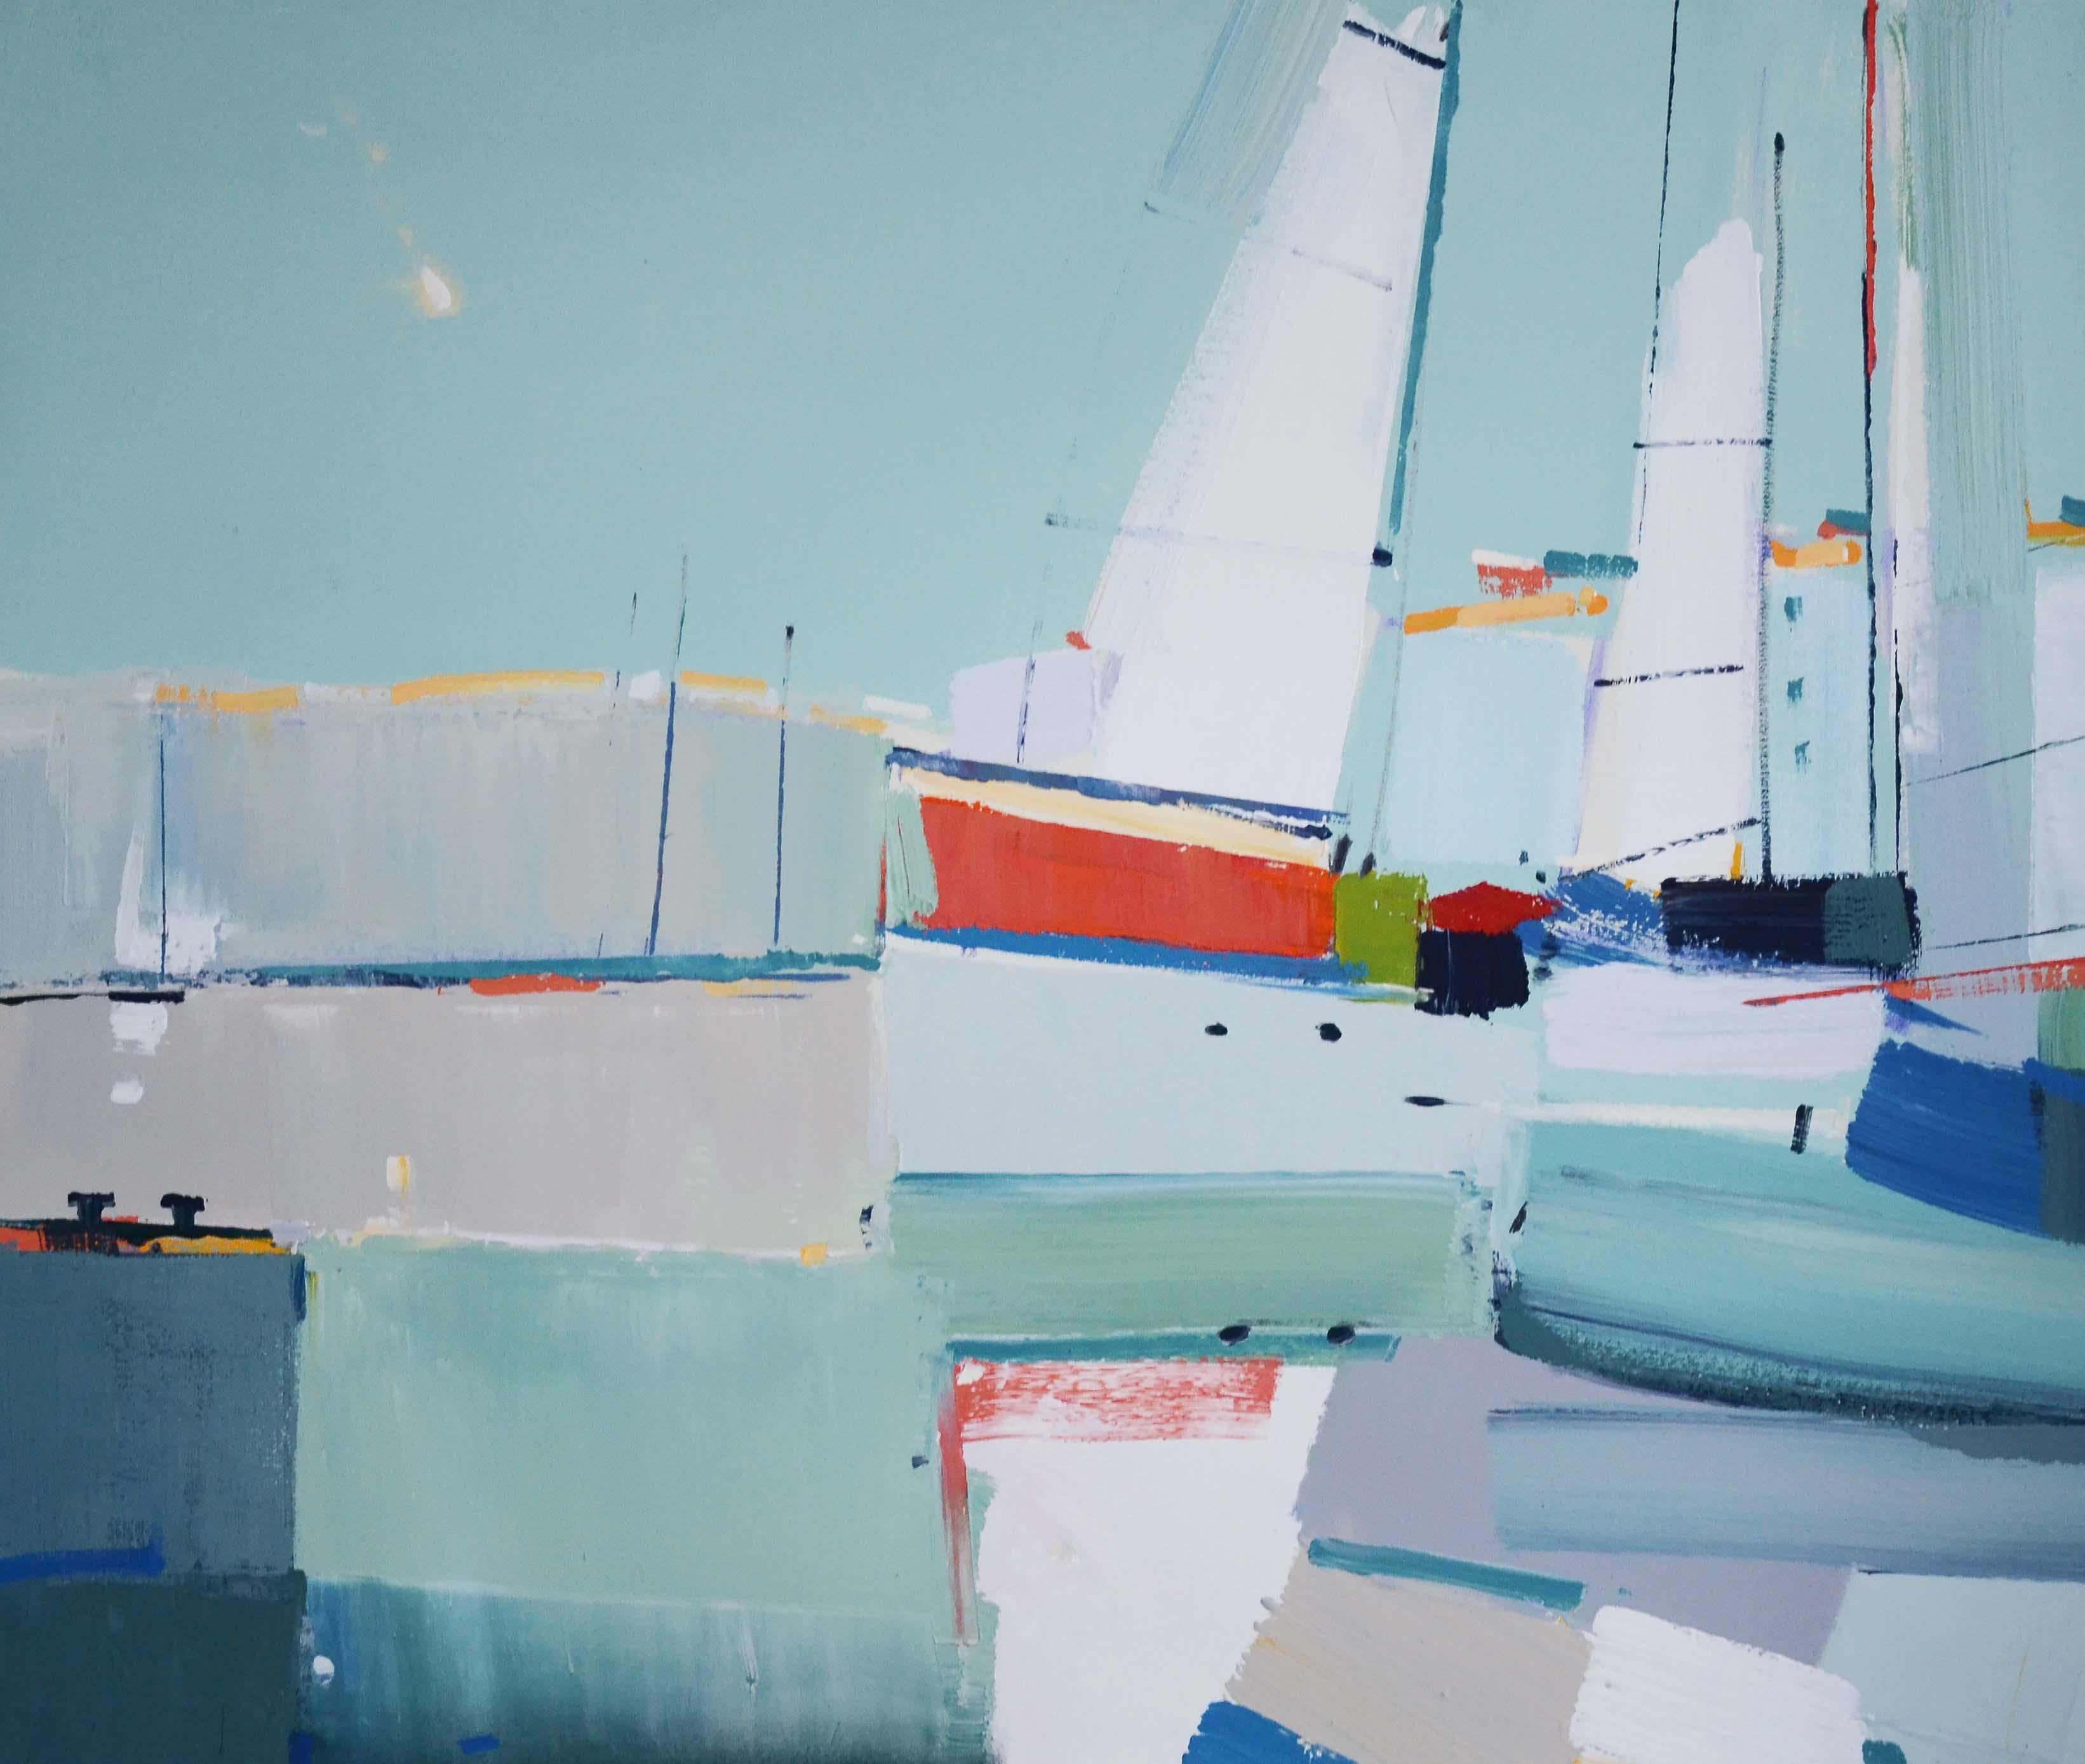 Drying the sails - abstract seascape, made in blue, white, turquoise, red color